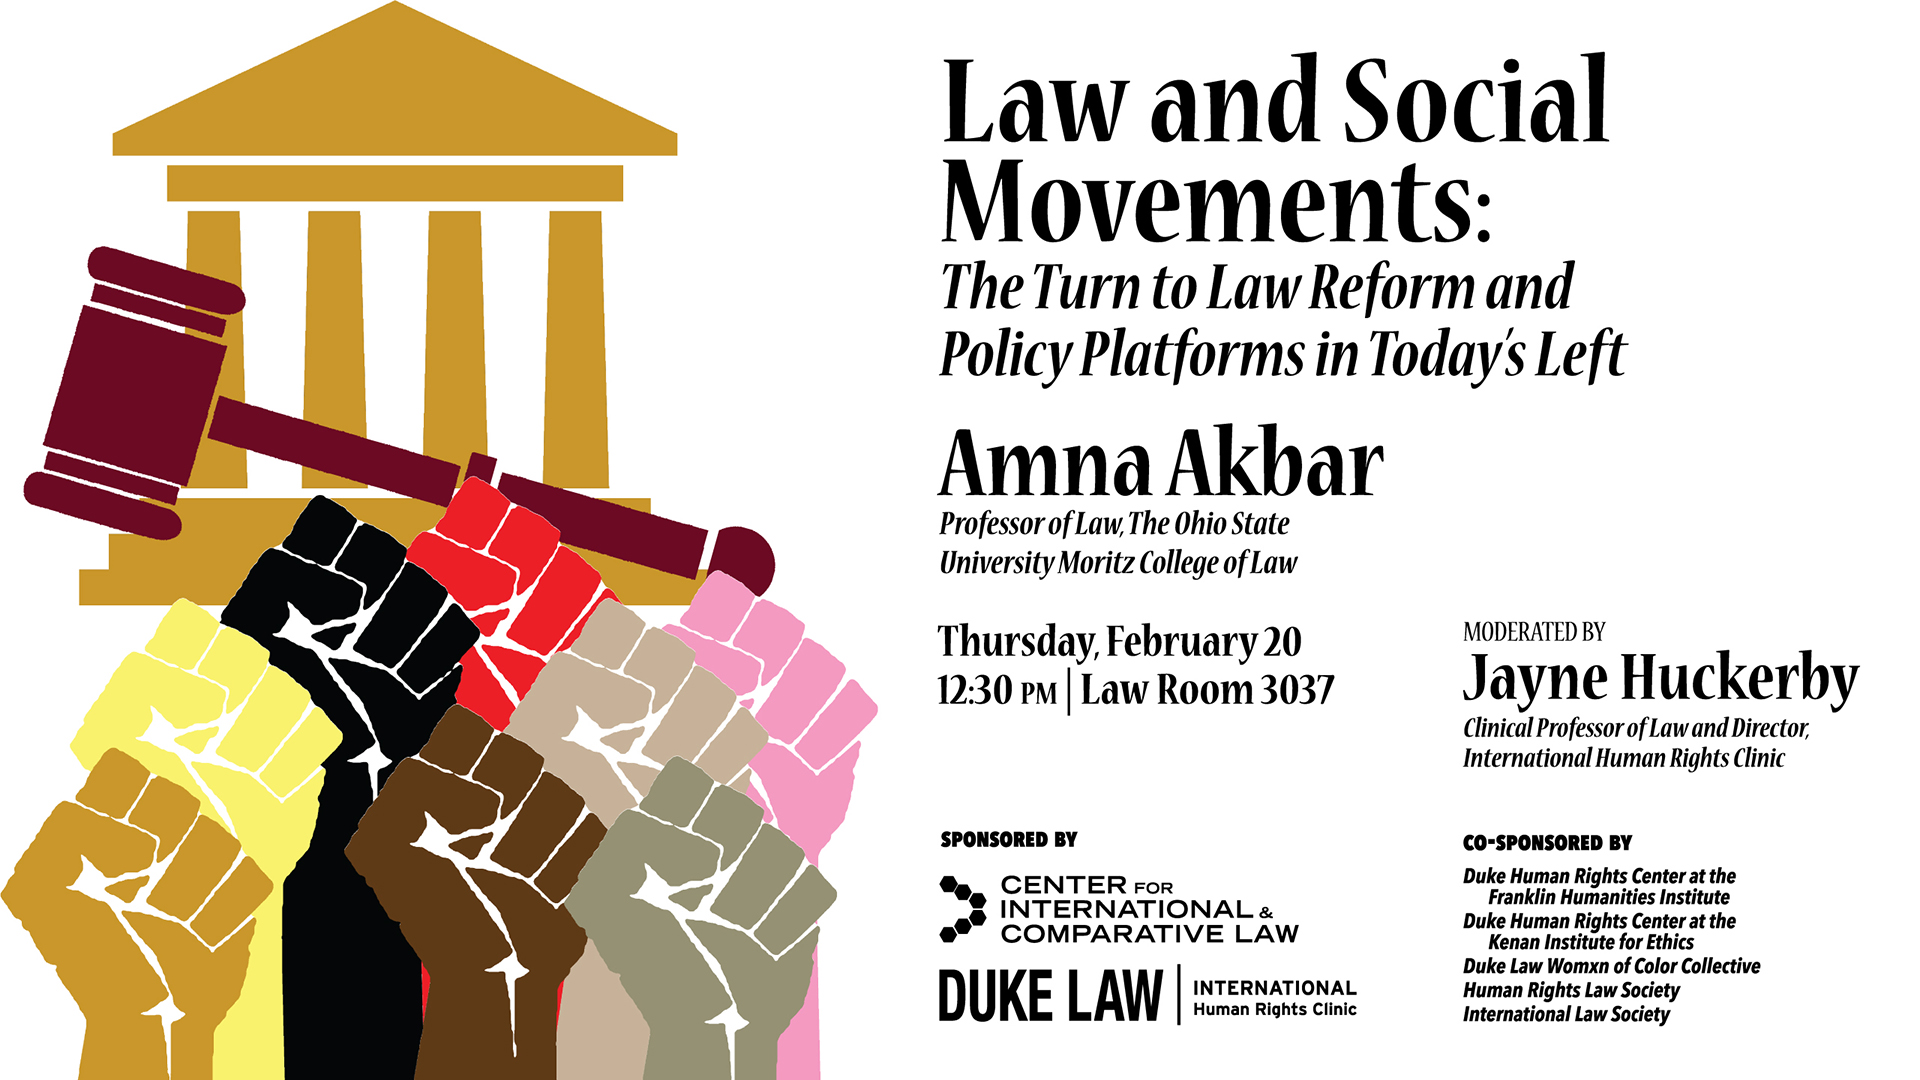 Human Rights in Practice -- Law and Social Movements: The Turn to Law Reform and Policy Platforms in Today's Left